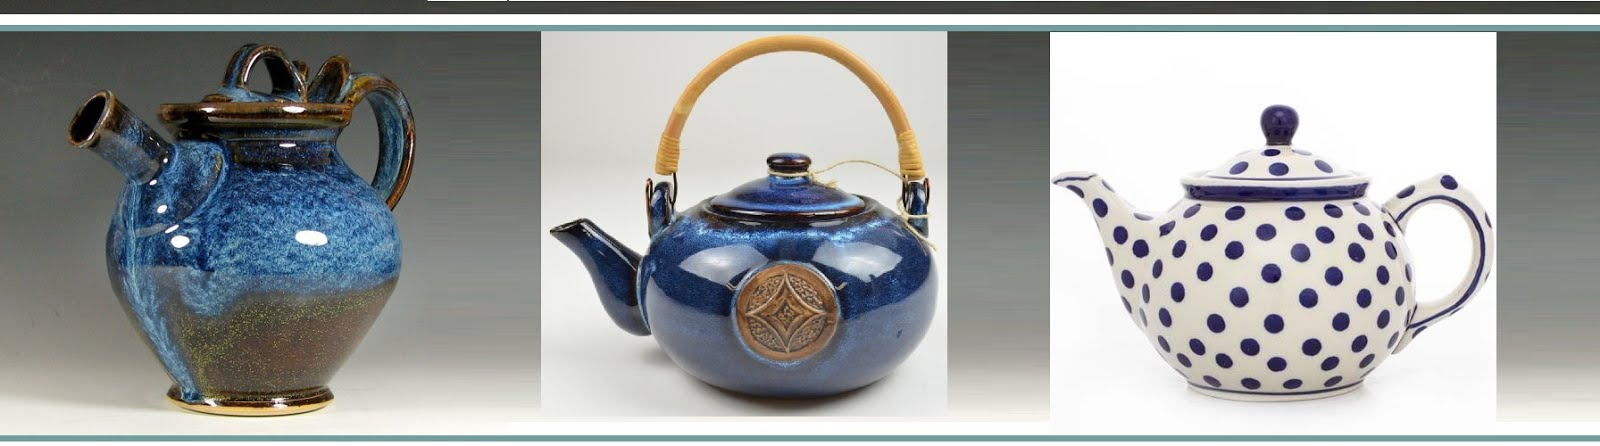 BLUE POTTERY TEAPOTS